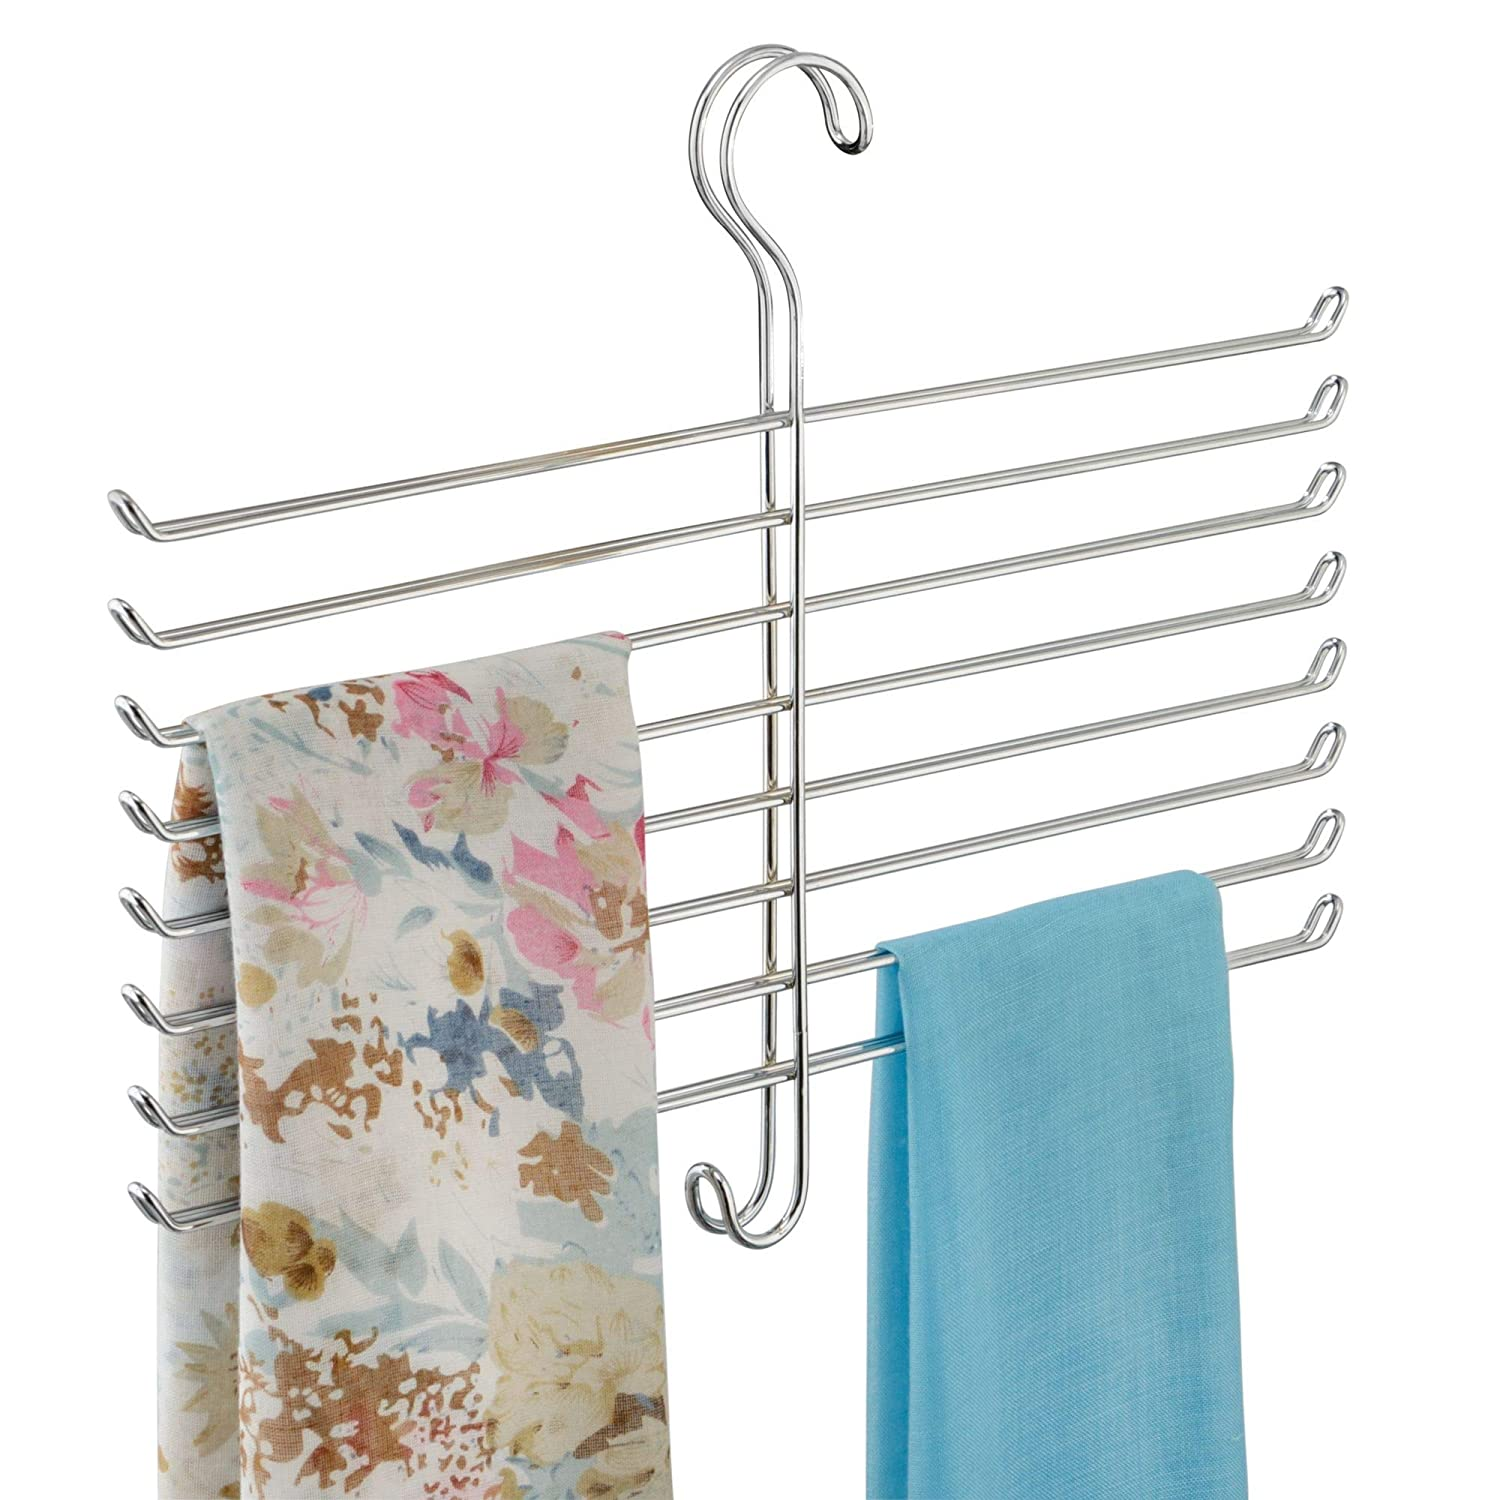 Clothing 10.25 x 3.75 x 6.75 Chrome Womens Shawls Scarves Accessories Pashminas Hanging Closet Organization Storage Holder for Belts interDesign Classico Metal Tie Hanger Mens Ties